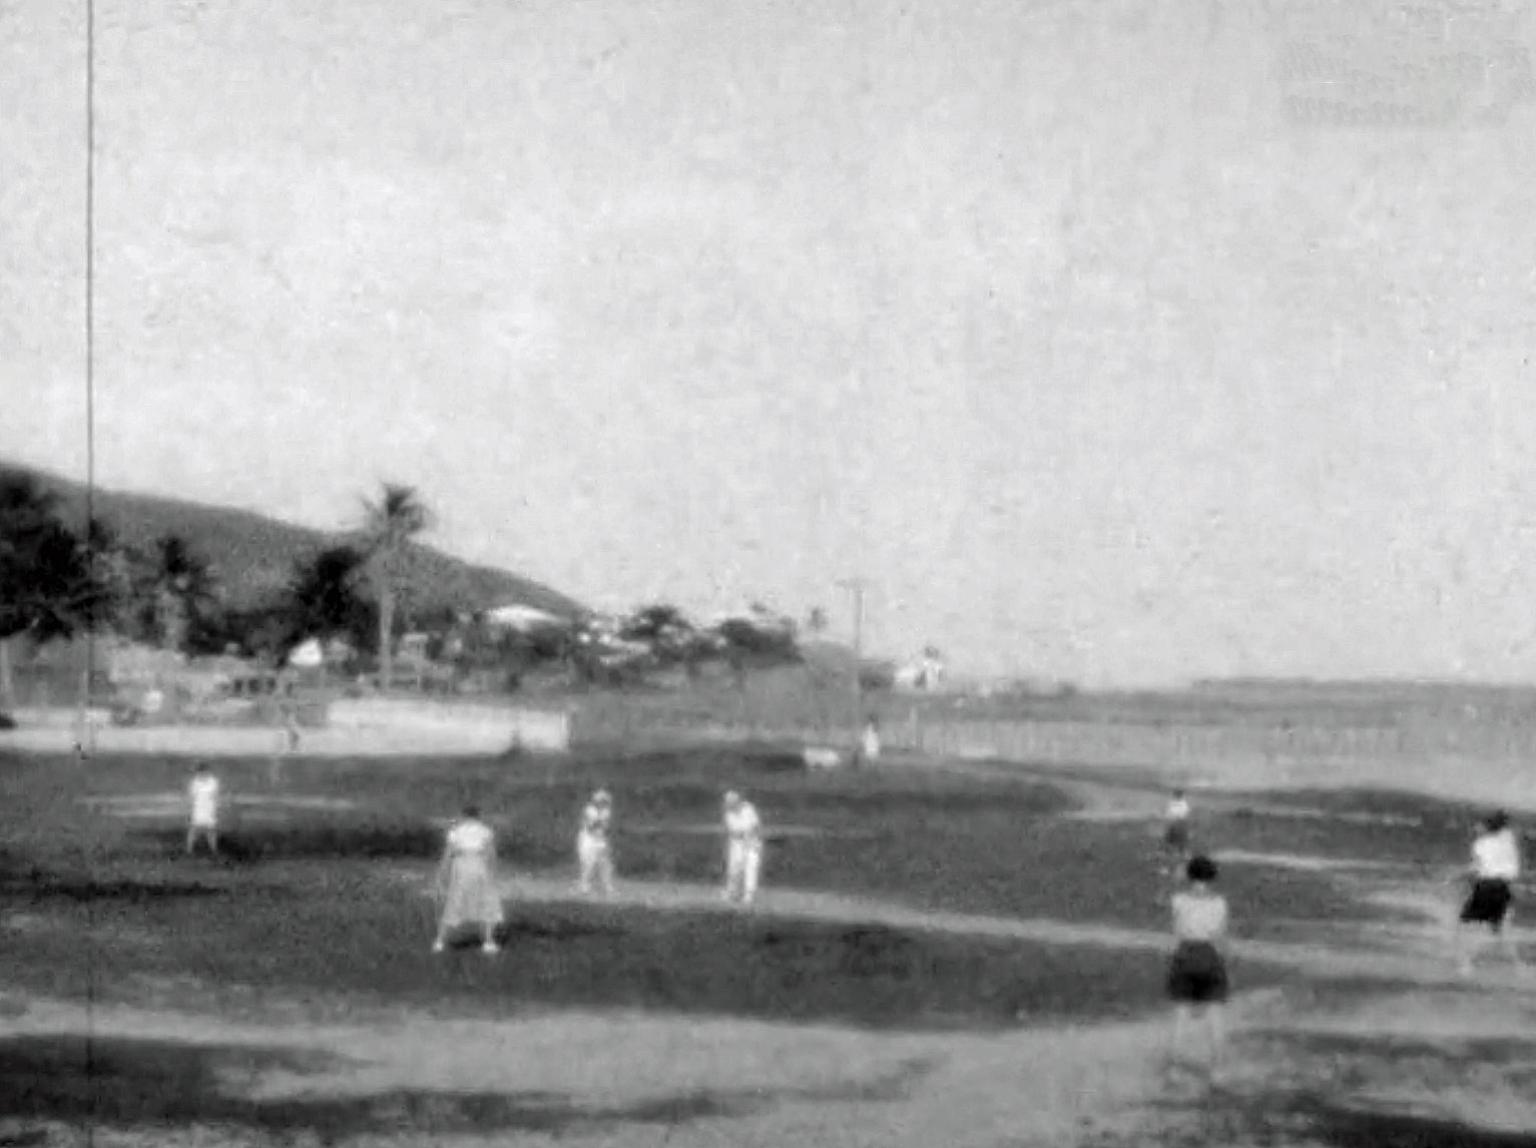 A grainy black and white still image from a 1933 home movie of some women playing cricket on Thursday Island in the Torres Strait.